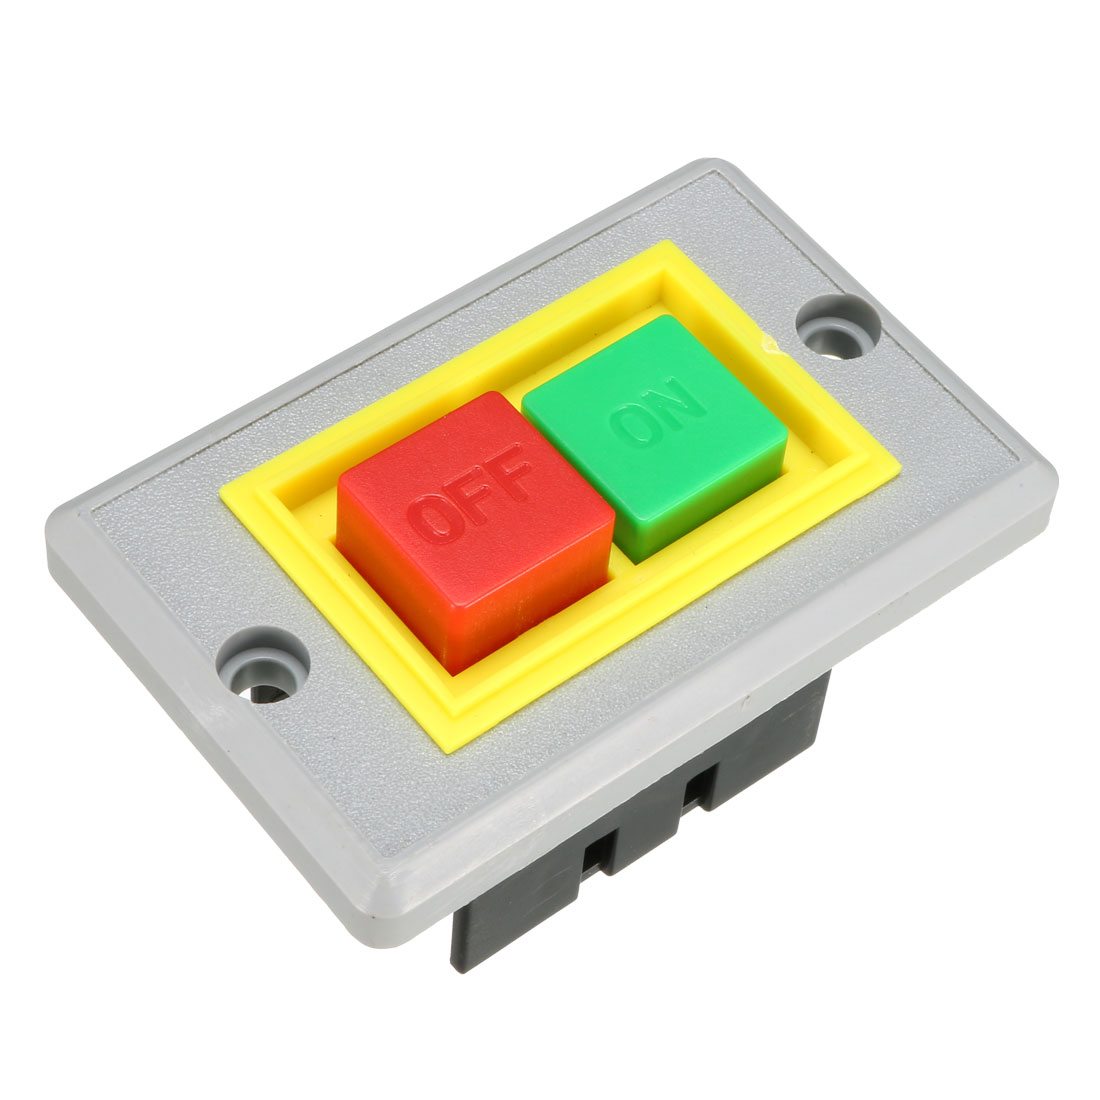 AC 380V 5A ON/OFF 2-Position Latching Start Stop Power Push Button Switch